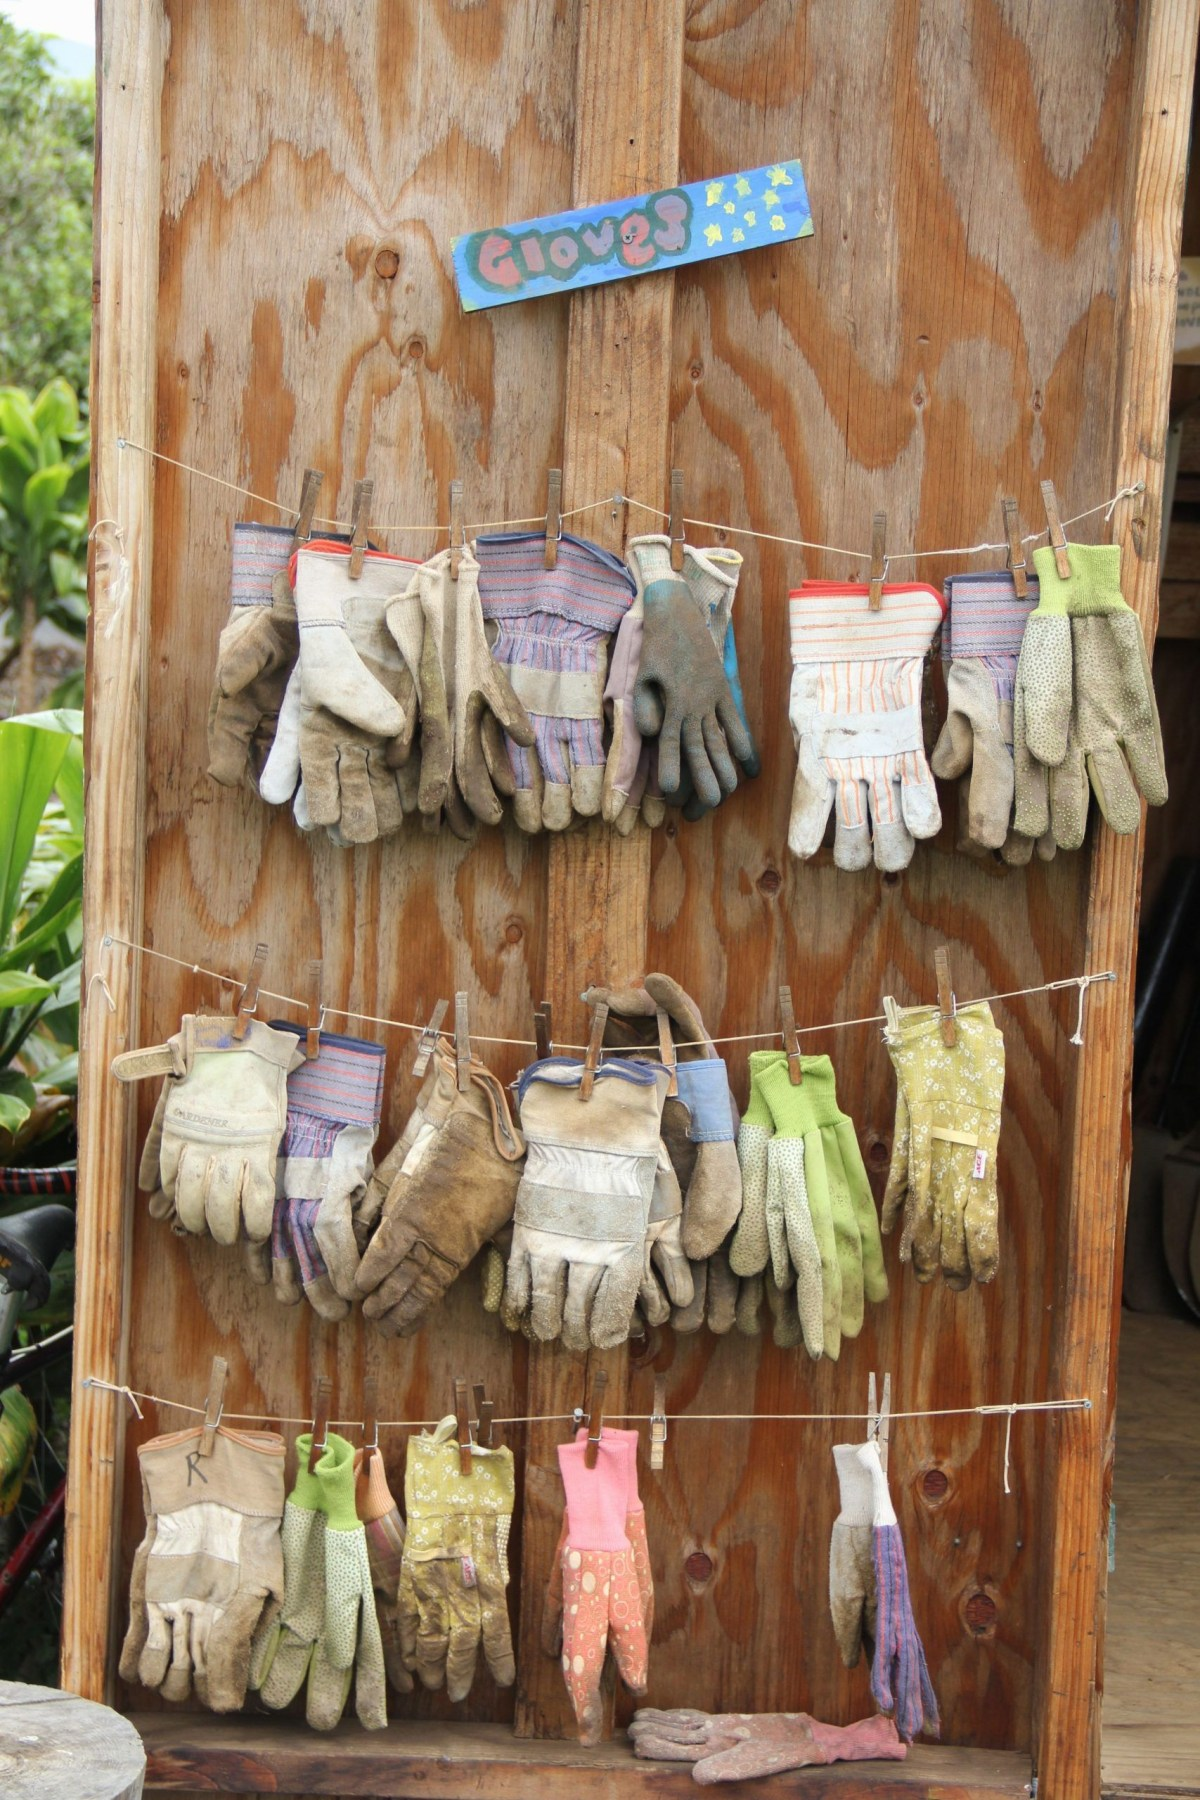 Garden glove drying rack DIY Saving Money Ideas Of Clothesline To Hang Dry Your Clothes